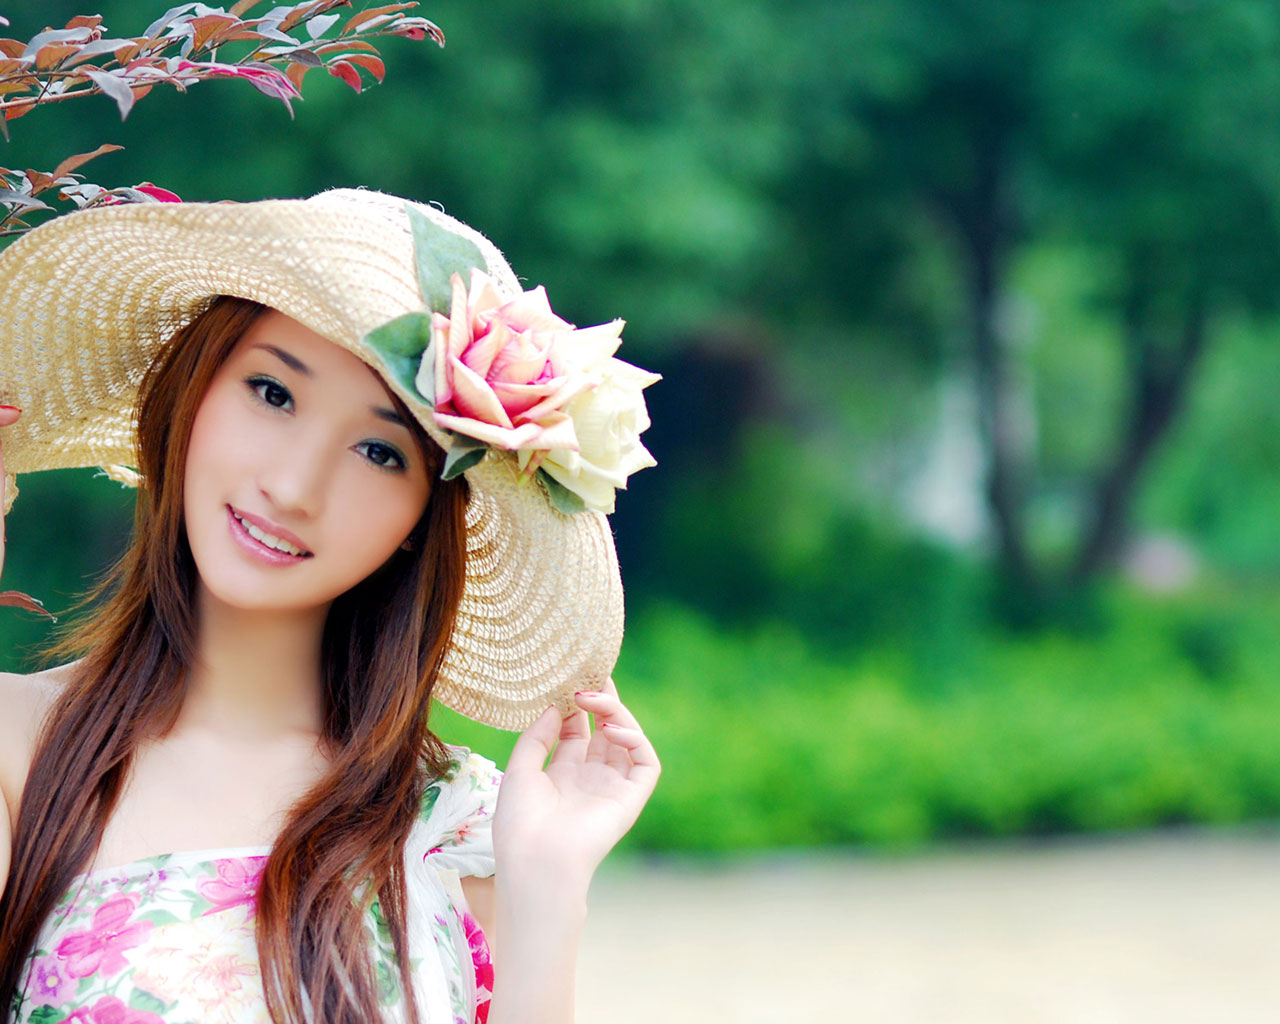 Cute Girl With Sweet Style Wallpaper - Lovely Girl in